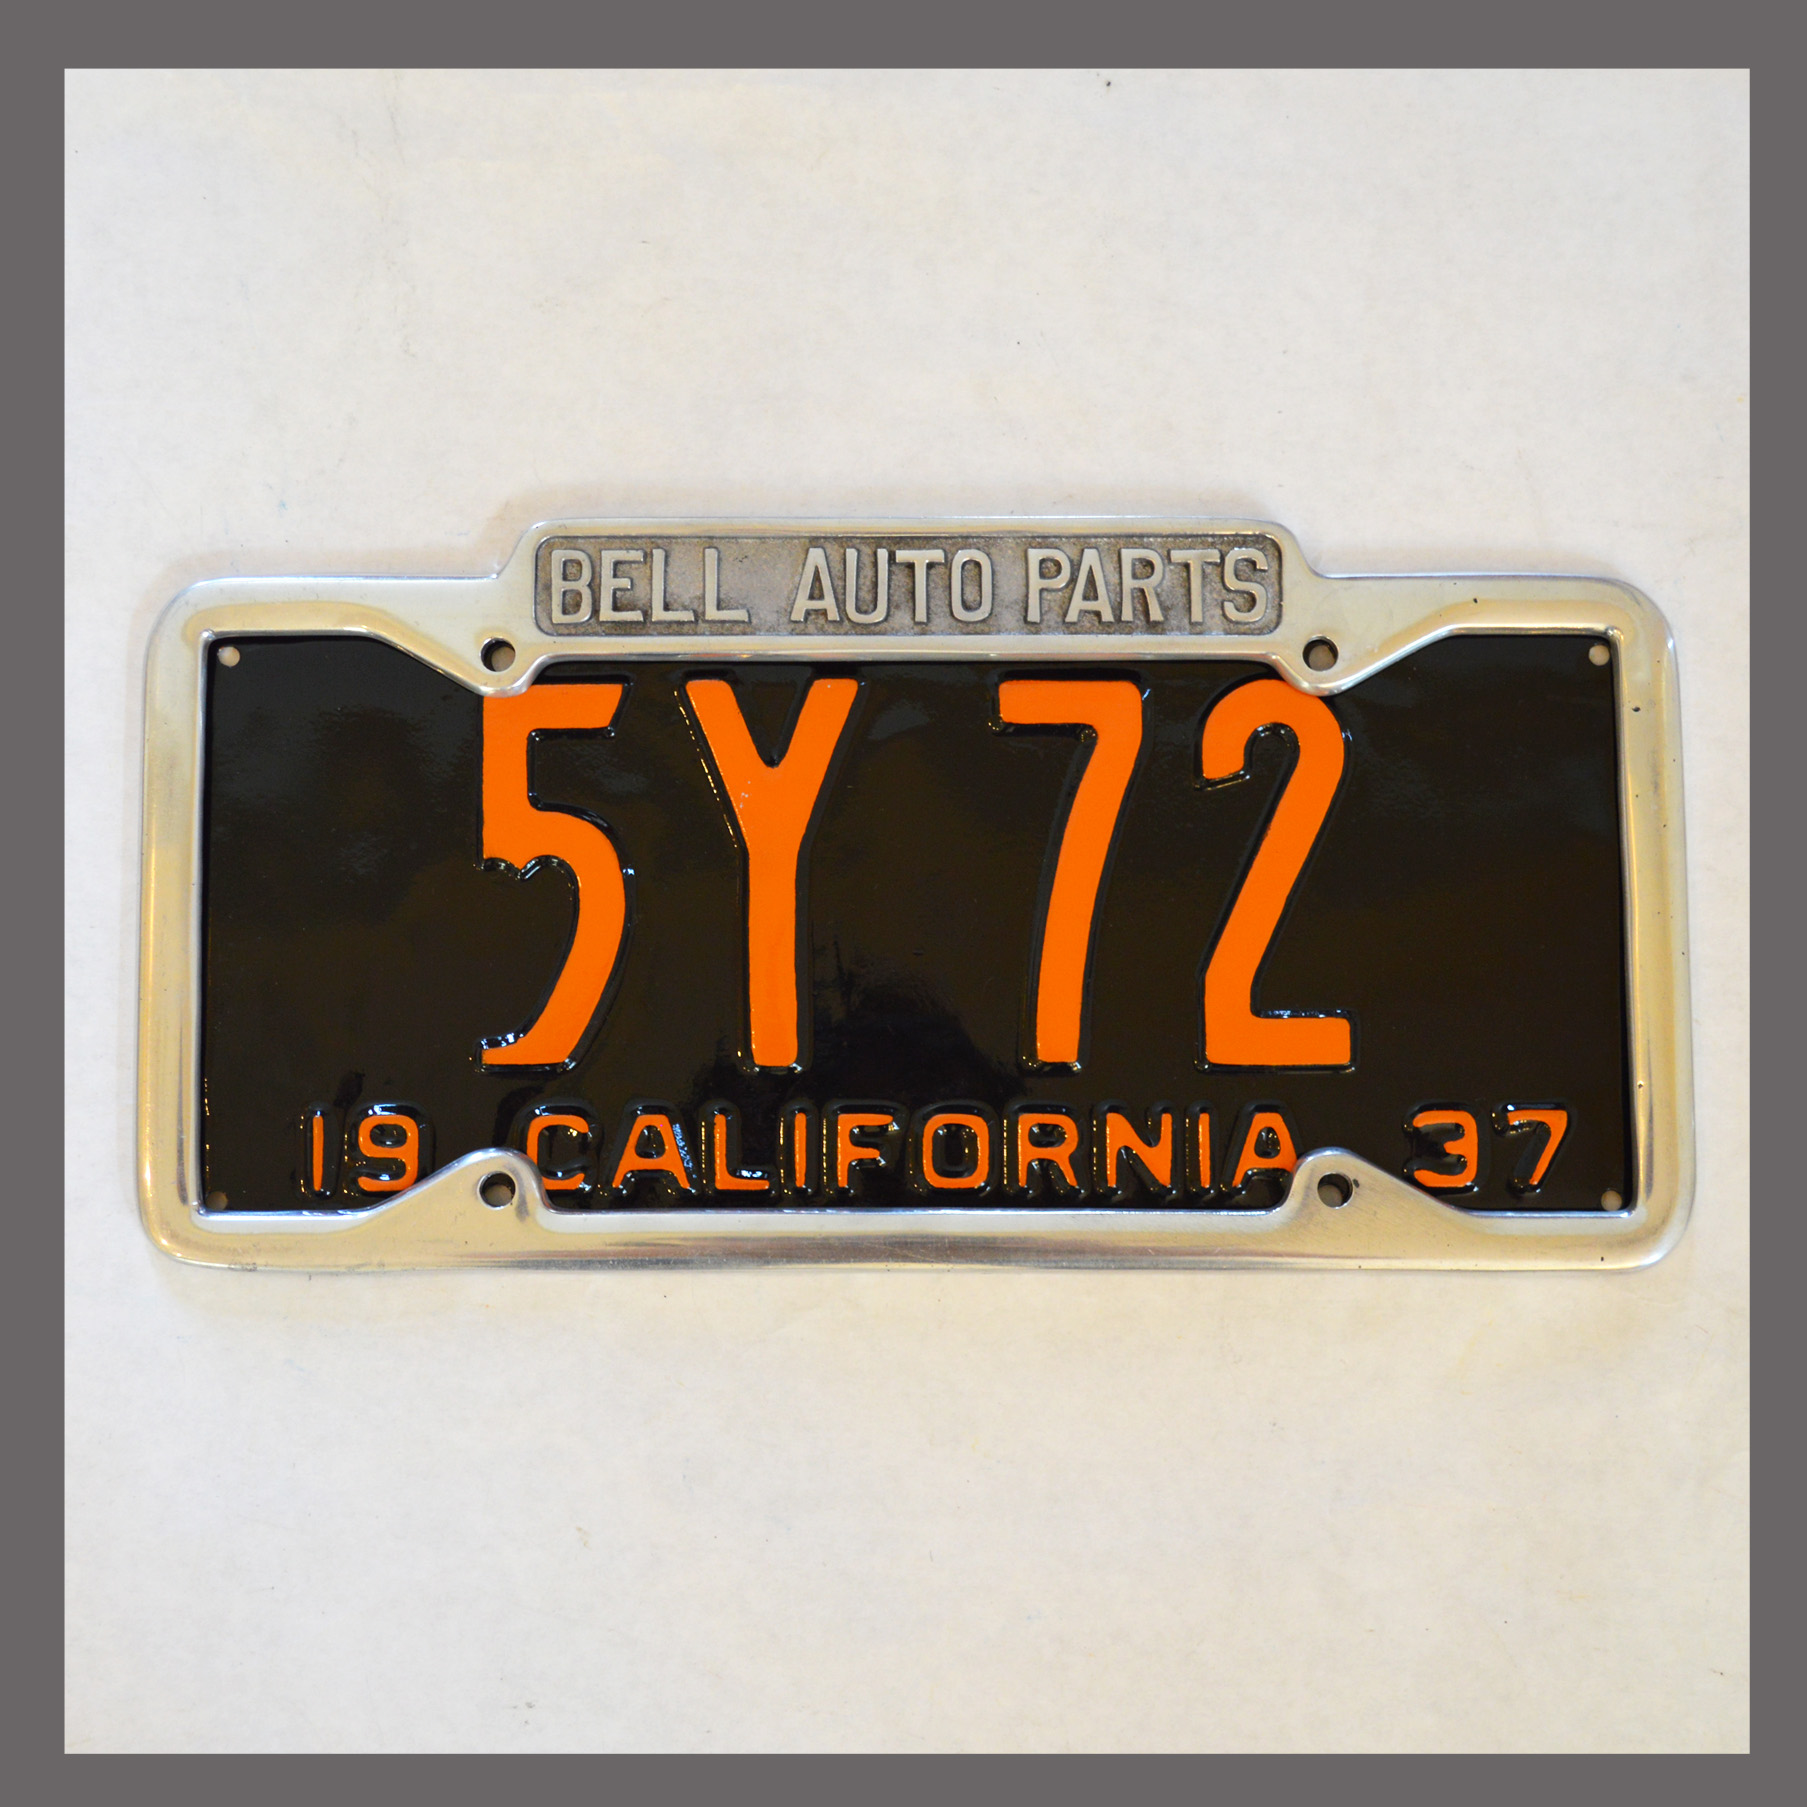 Bell Auto Parts California Polished License Plate Frame For Sale